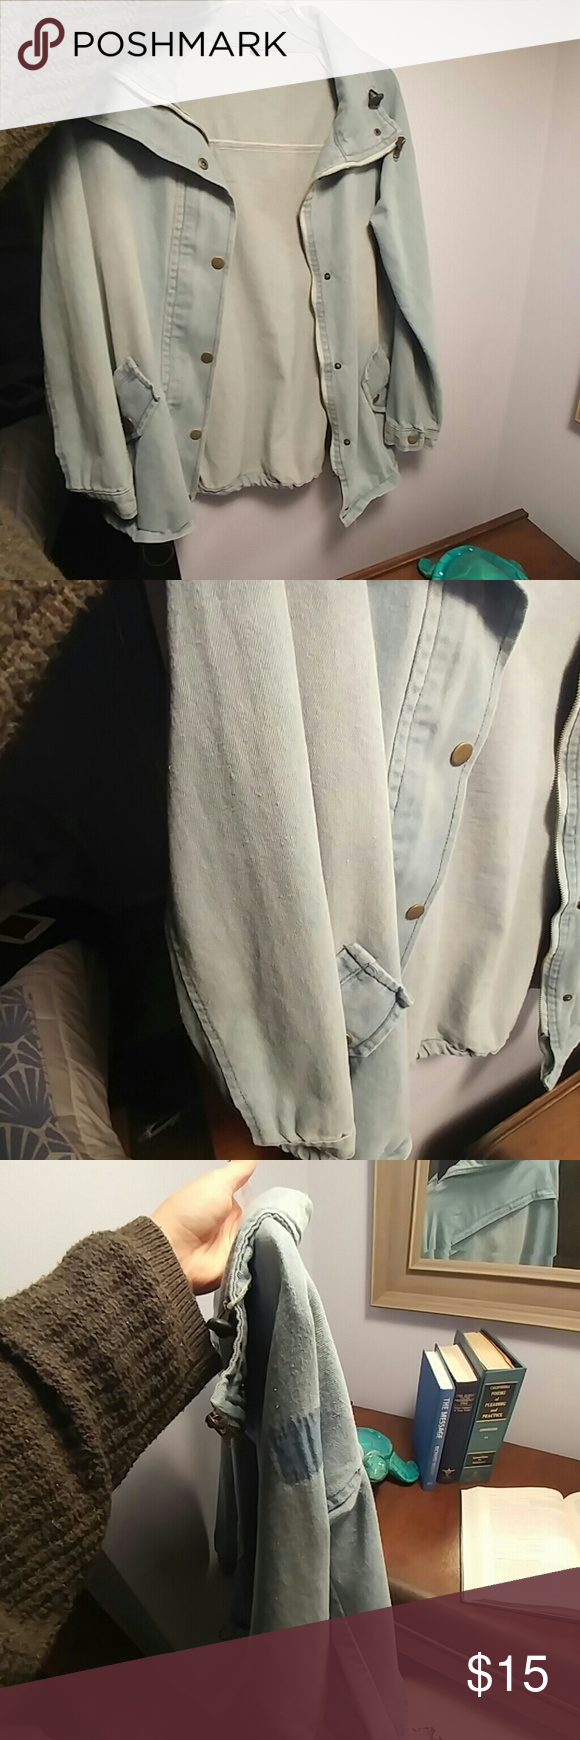 Faded Jean denim jacket Pockets look real but are not  Great jacket, goes well with everything  Medium Heavy Jackets & Coats Jean Jackets